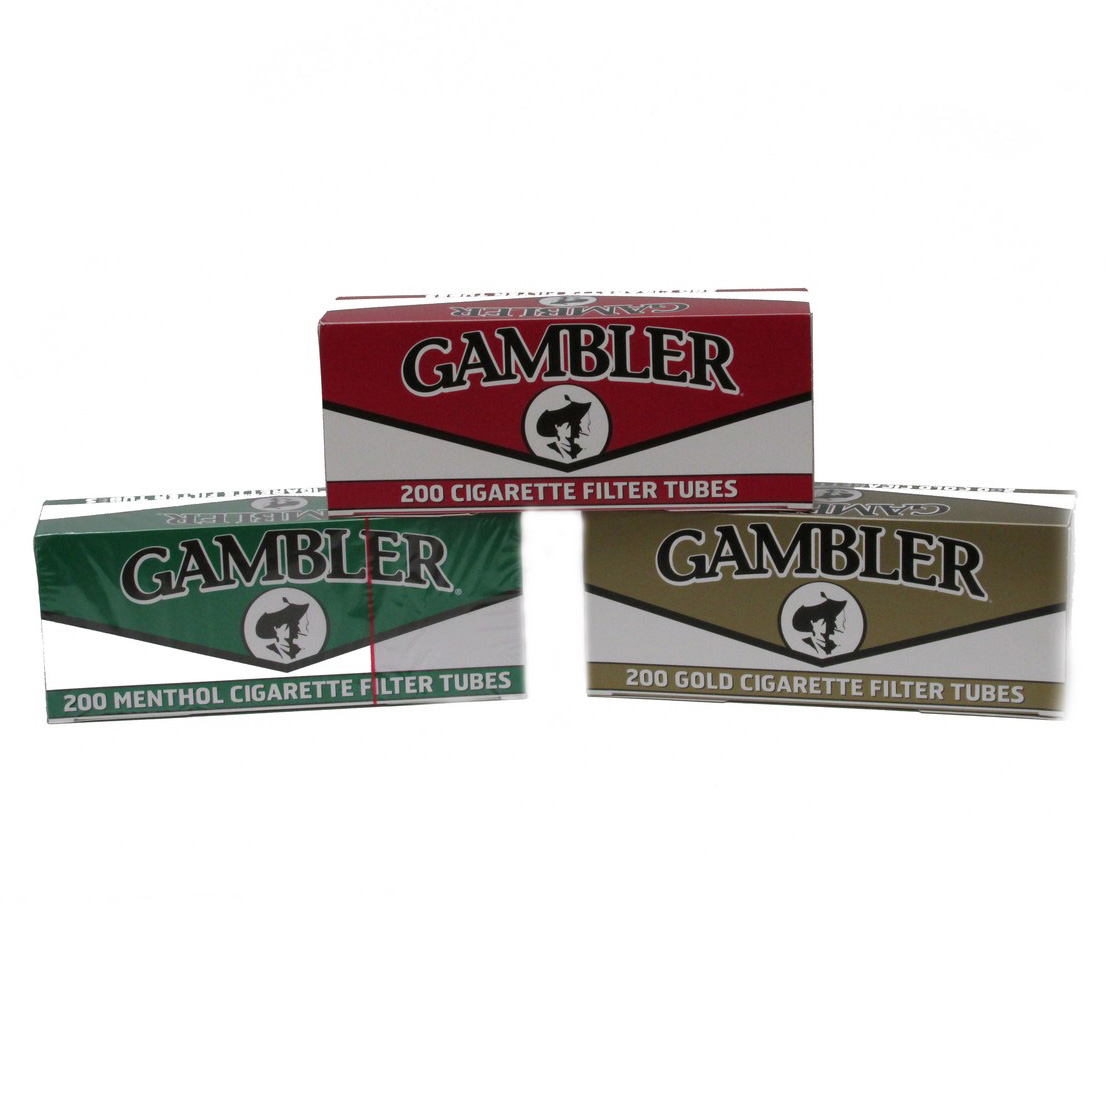 Gambler Cigarette Filter Tubes